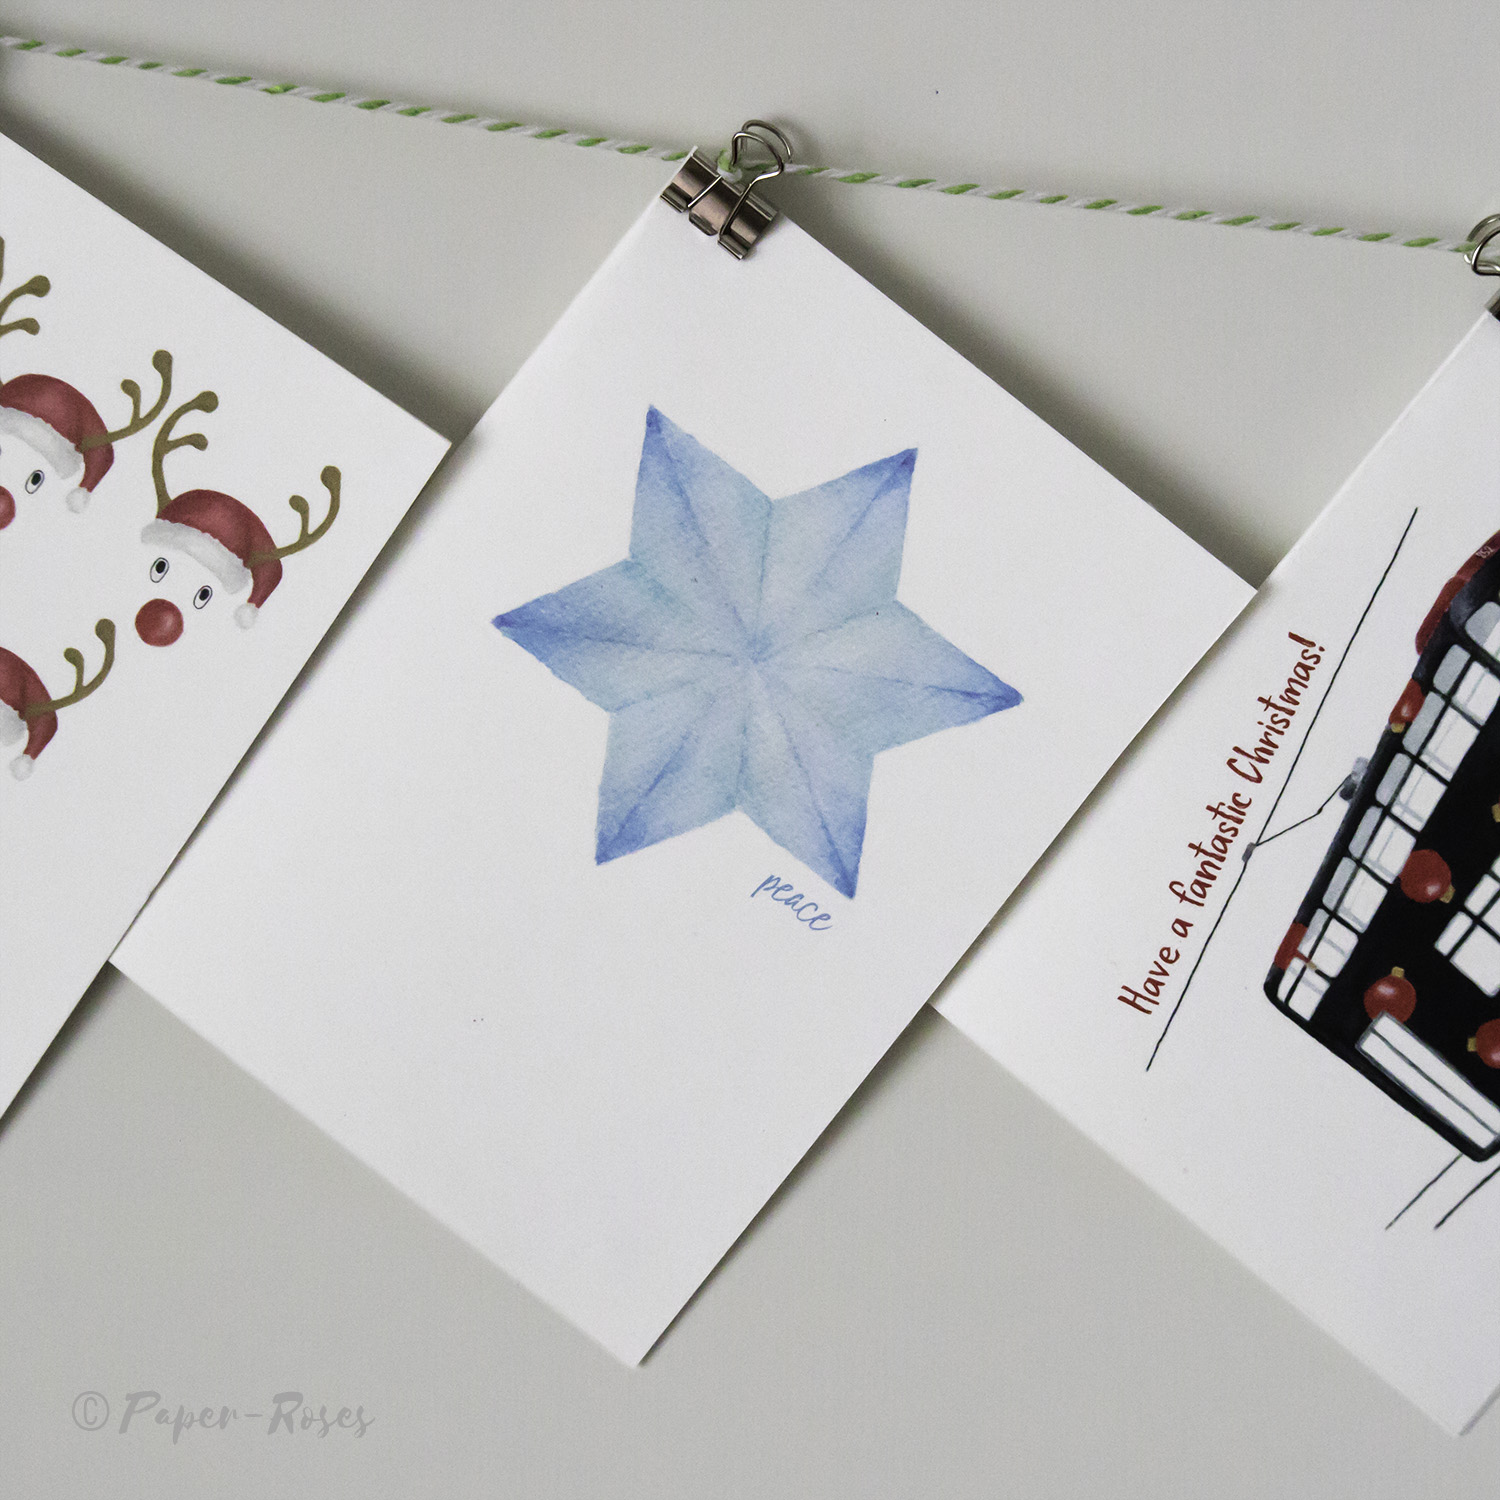 Paper-Roses | Festive shop | Starflake holiday card